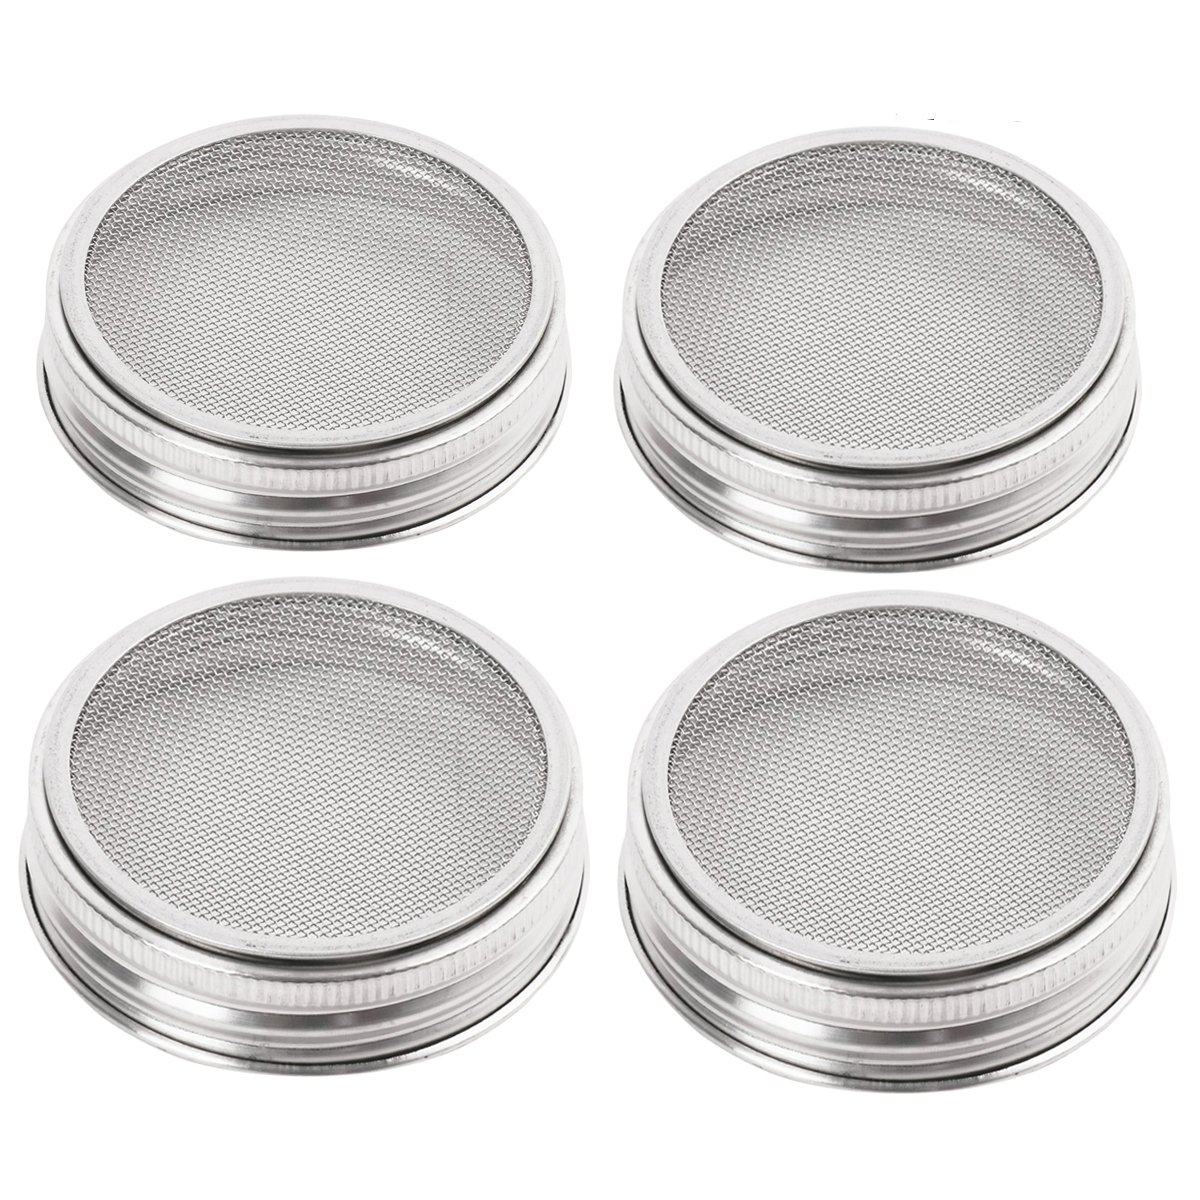 4 Pack Stainless Steel Sprouting Jar Strainer Lids - Regular Mouth Mason Jar Screen Sprouting Kit Lids - for Growing Bean, Broccoli, Alfalfa, Salad Sprouts and More